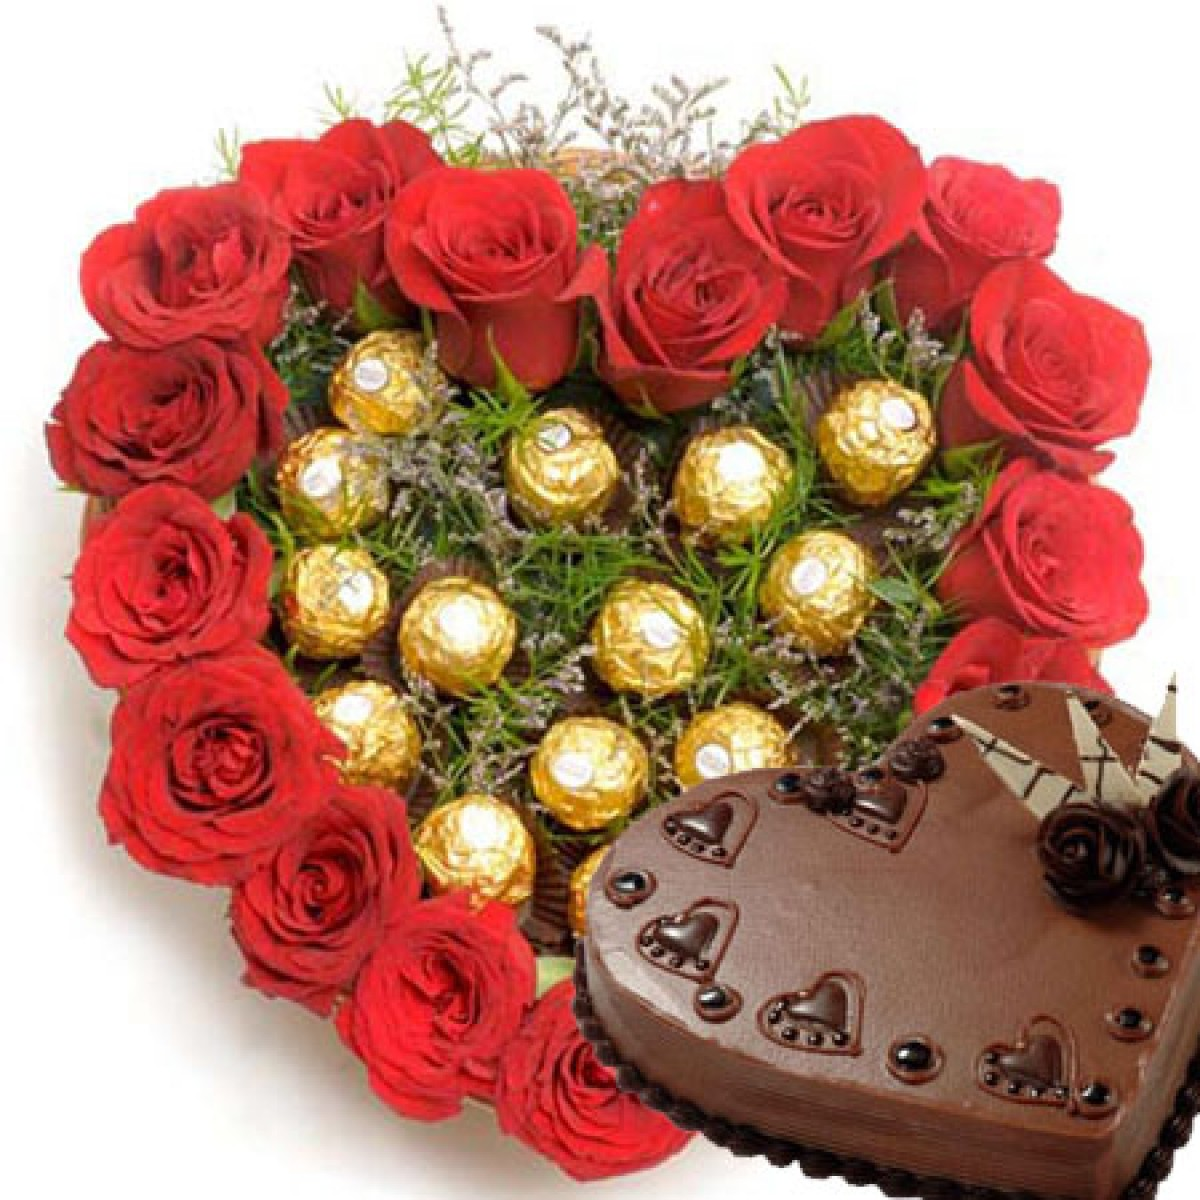 16-roses-with-16pc-ferrero-arrangement-heart-cake.jpg